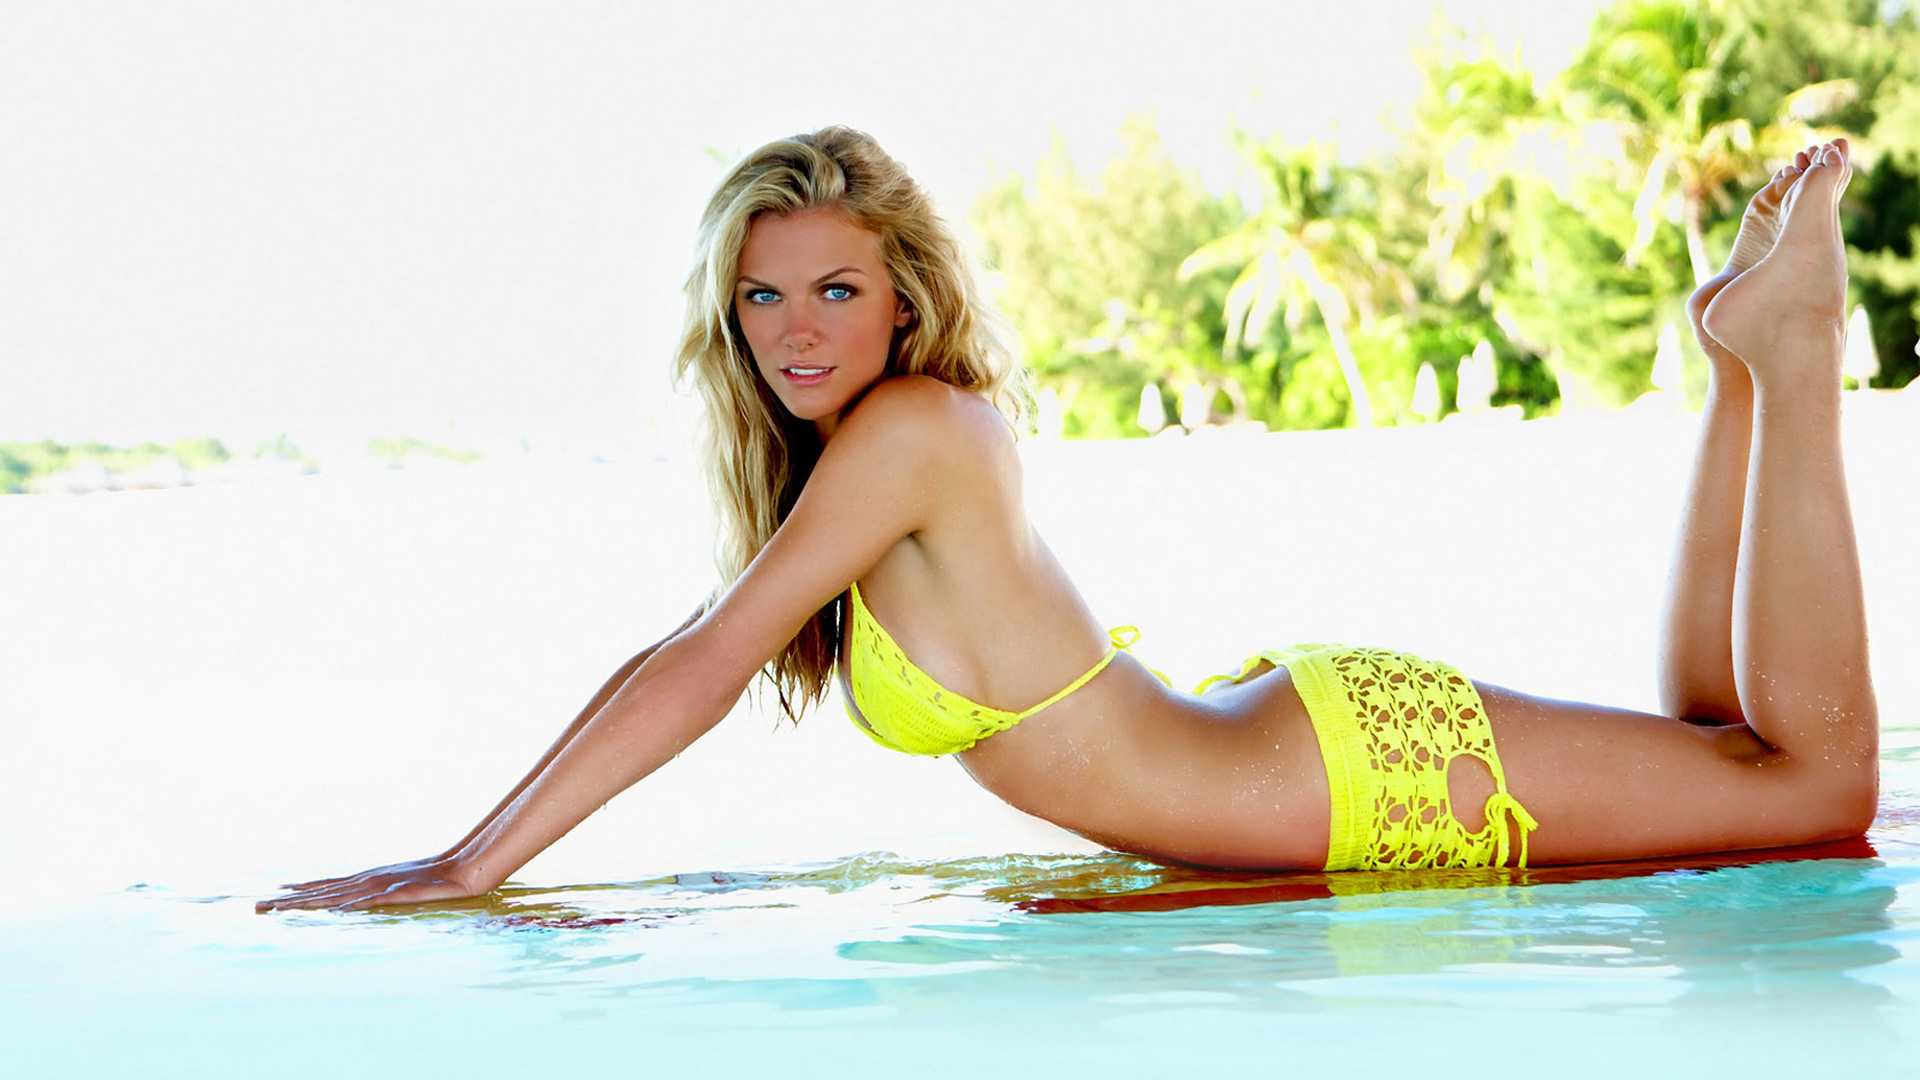 Brooklyn Decker Wallpapers High Quality | Download Free Brooklyn Decker